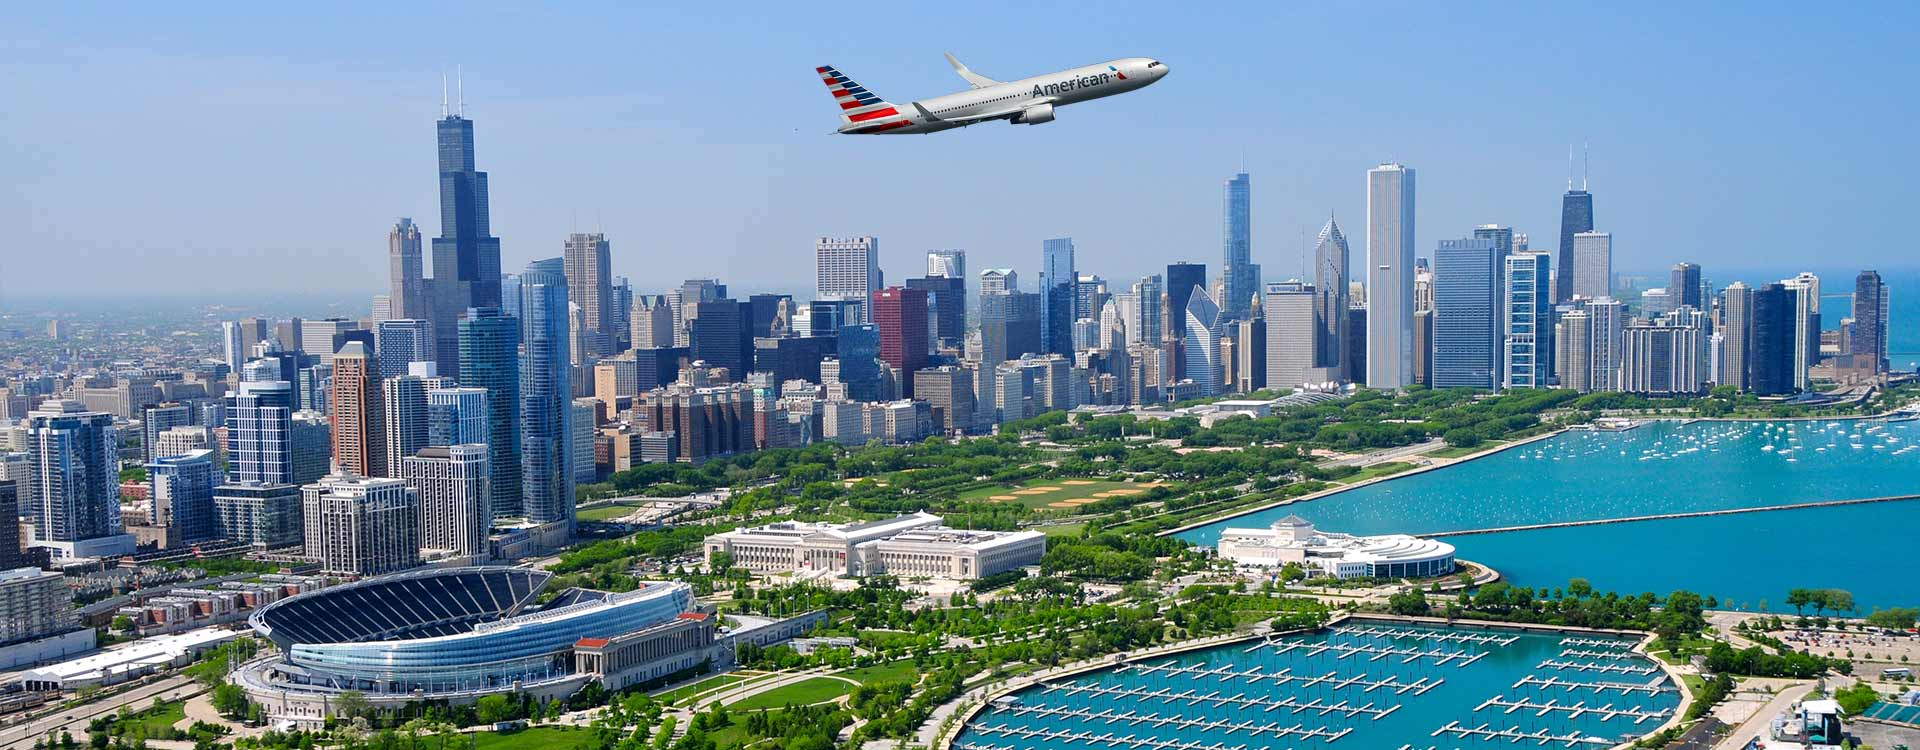 Know-How American Airlines Became the King of Airlines   Cheapbestfares